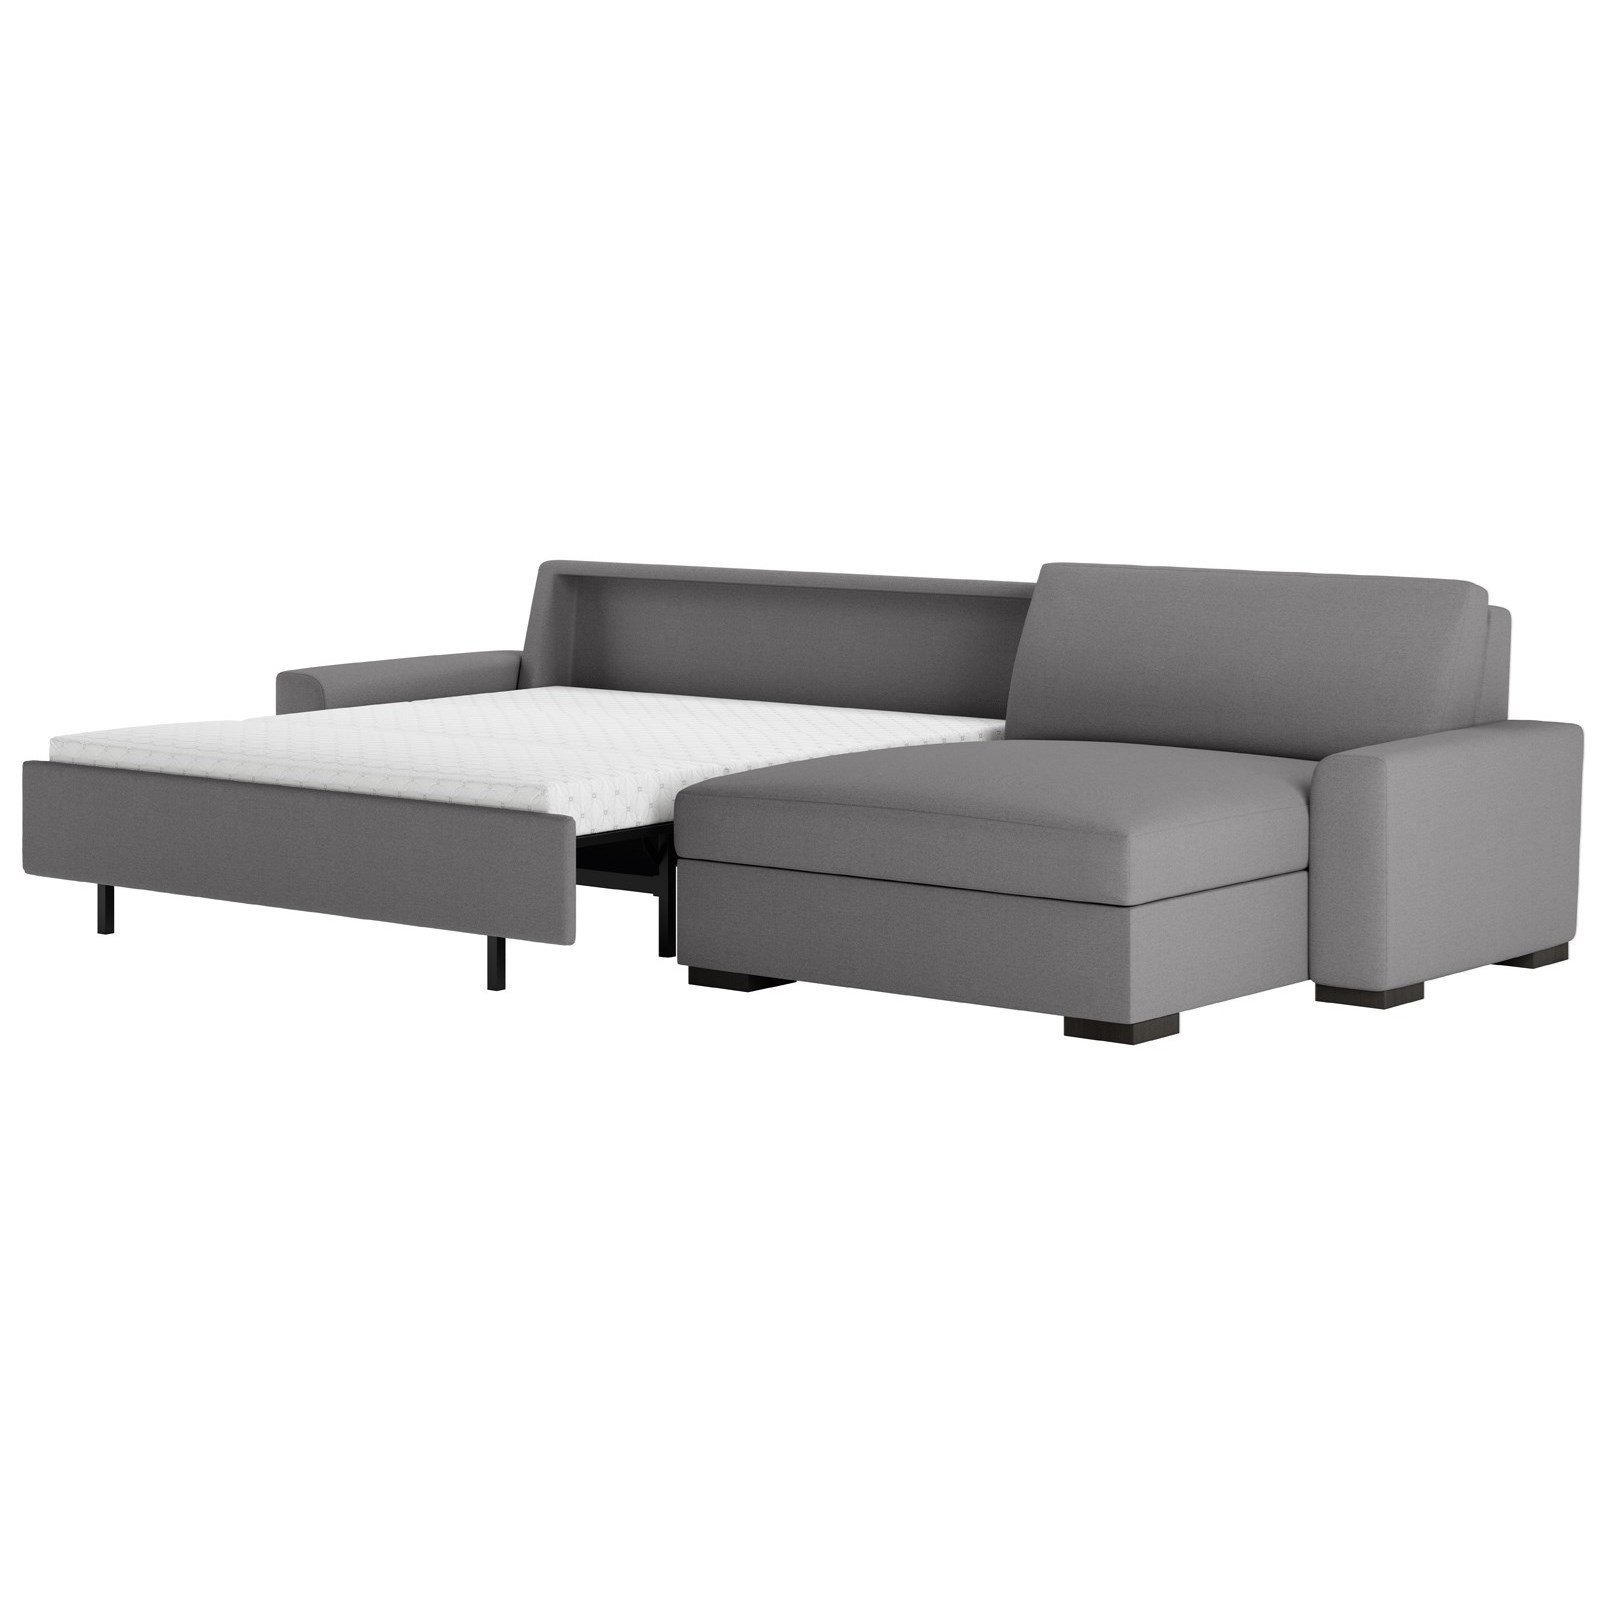 Olson 2 Pc Sectional w/ Queen Sleeper & Lge Chaise by American Leather at Baer's Furniture